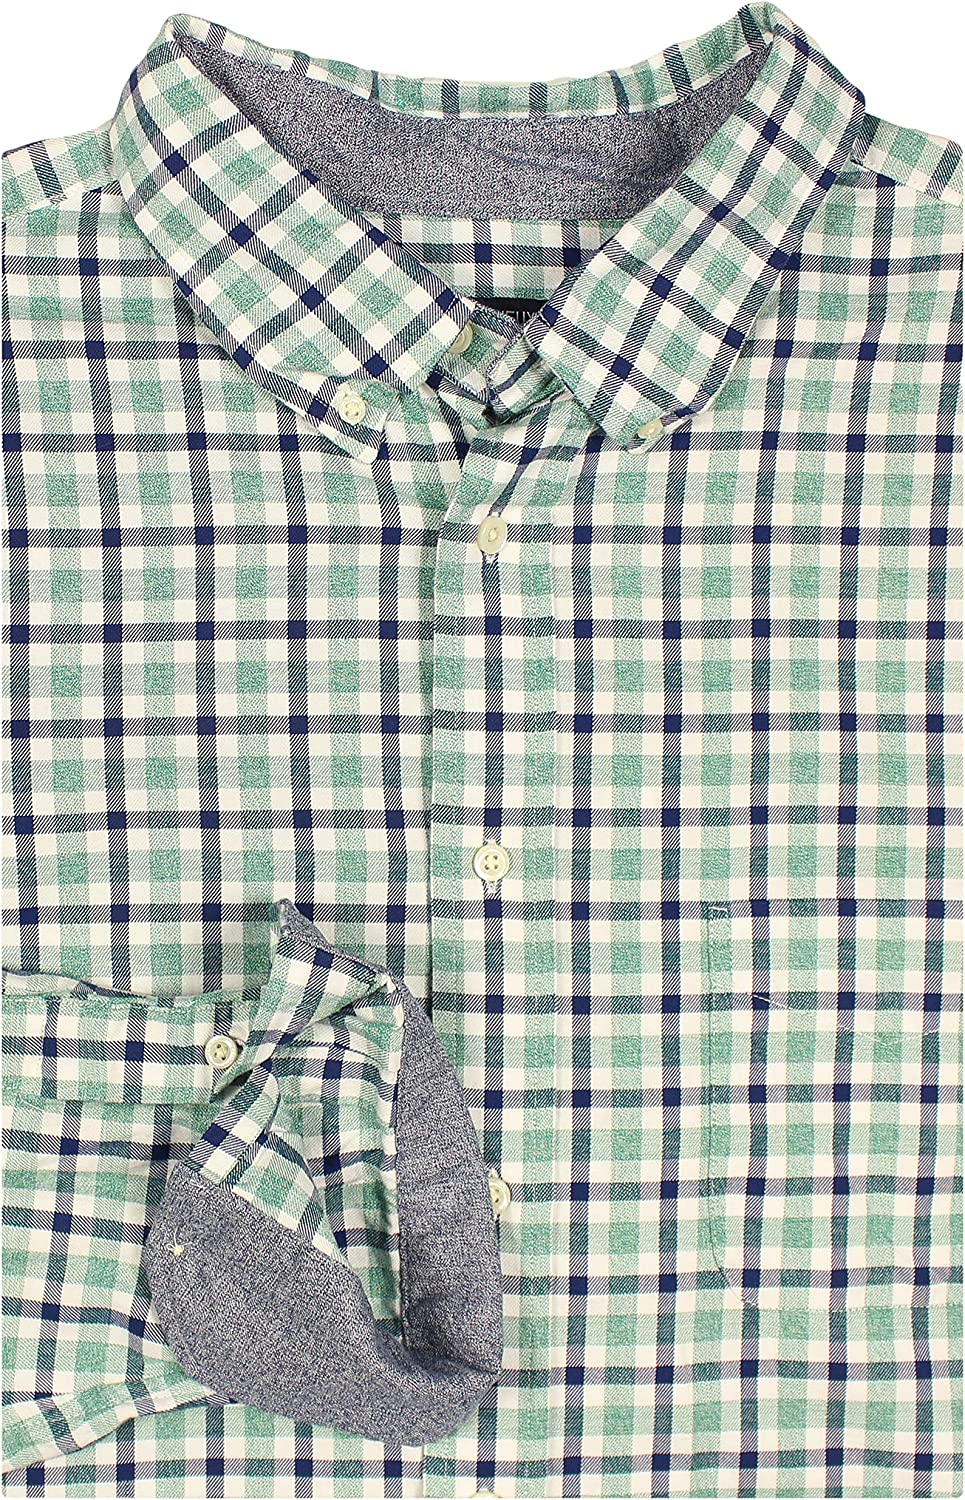 Cremieux Men's Big and Tall Super Soft Garment-Washed Long Sleeve Shirt